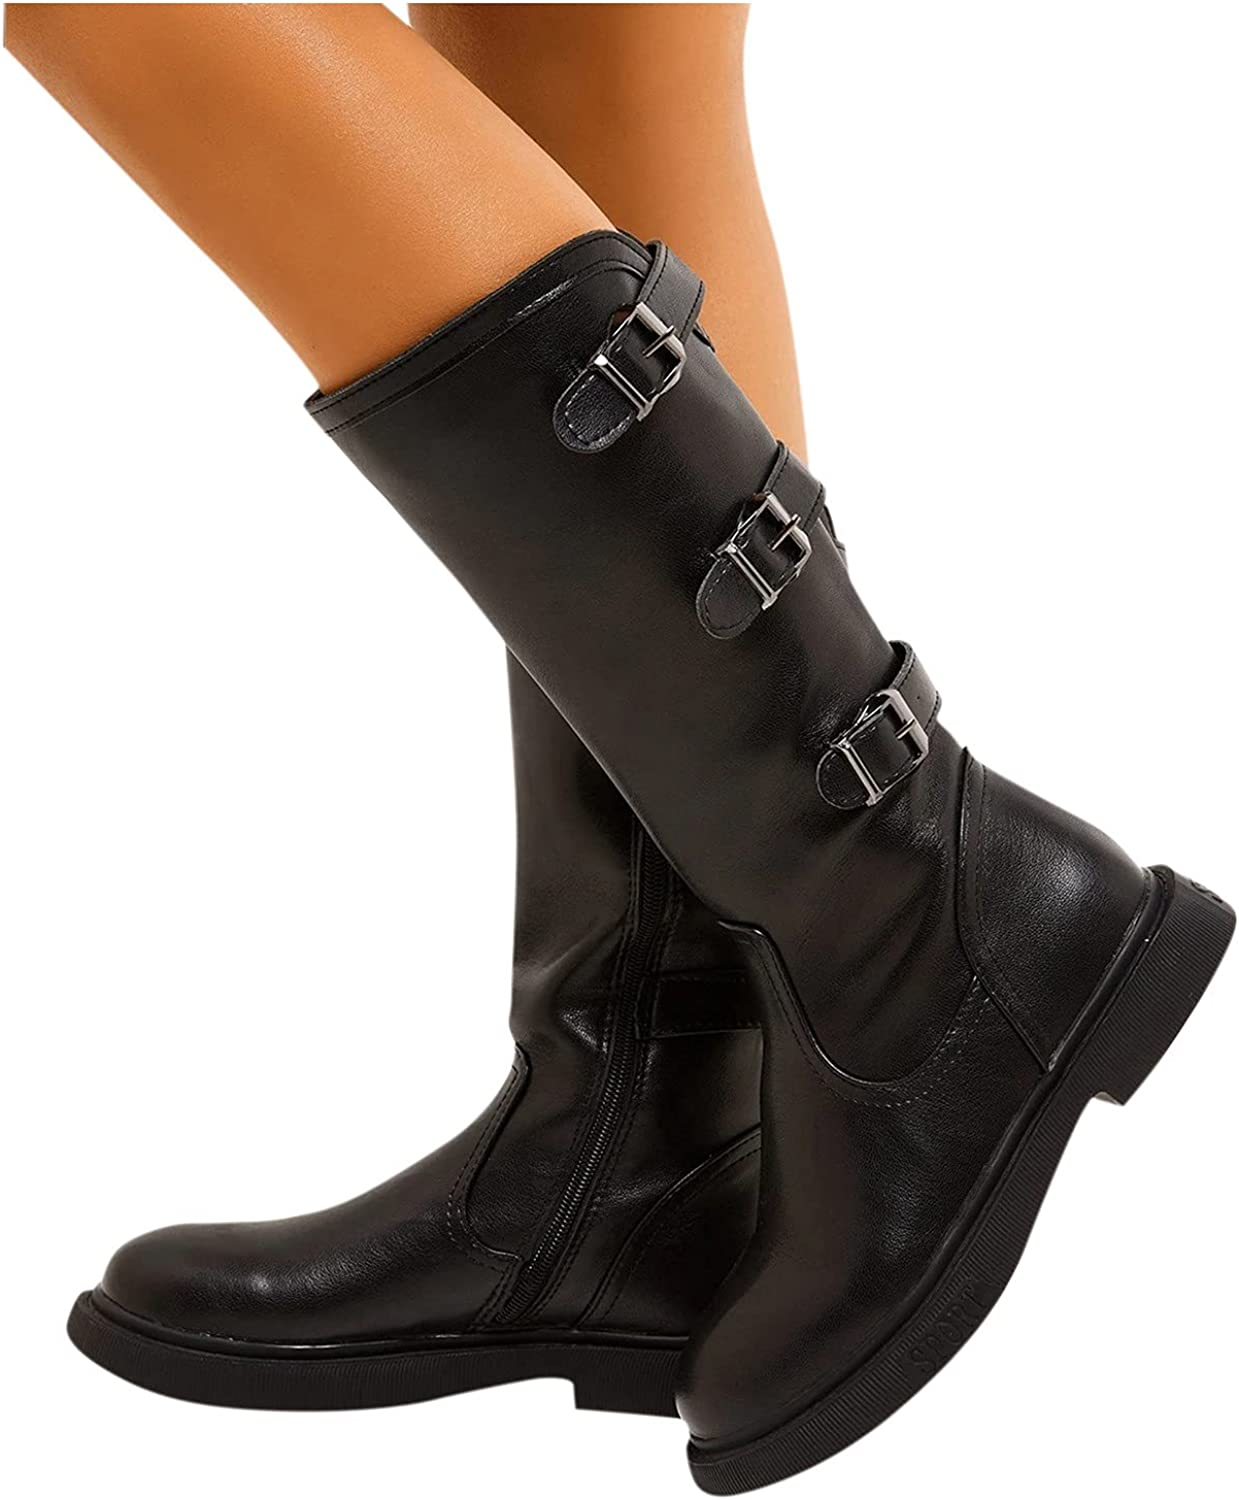 Boots for Womens Fashion Vintage Buckle Thick Heels Mid-Calf Boots Casual Boots for Women Riding Shoes